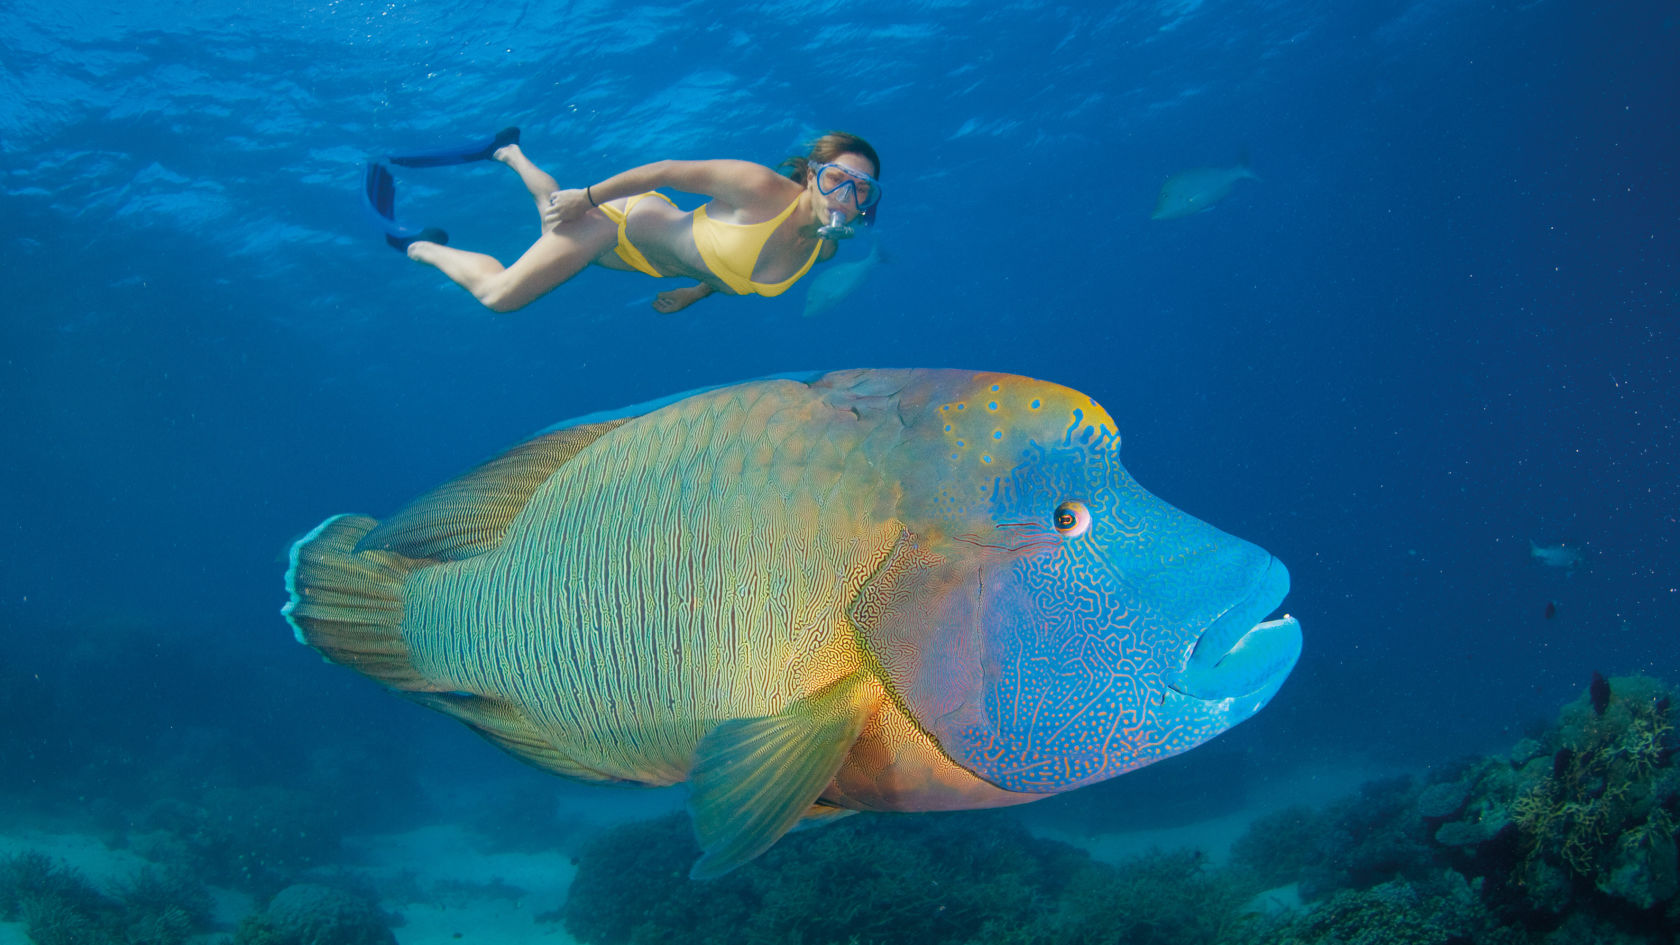 Planning Your Visit to the Great Barrier Reef - Your Questions Answered What types of animals call the Great Barrier Reef home